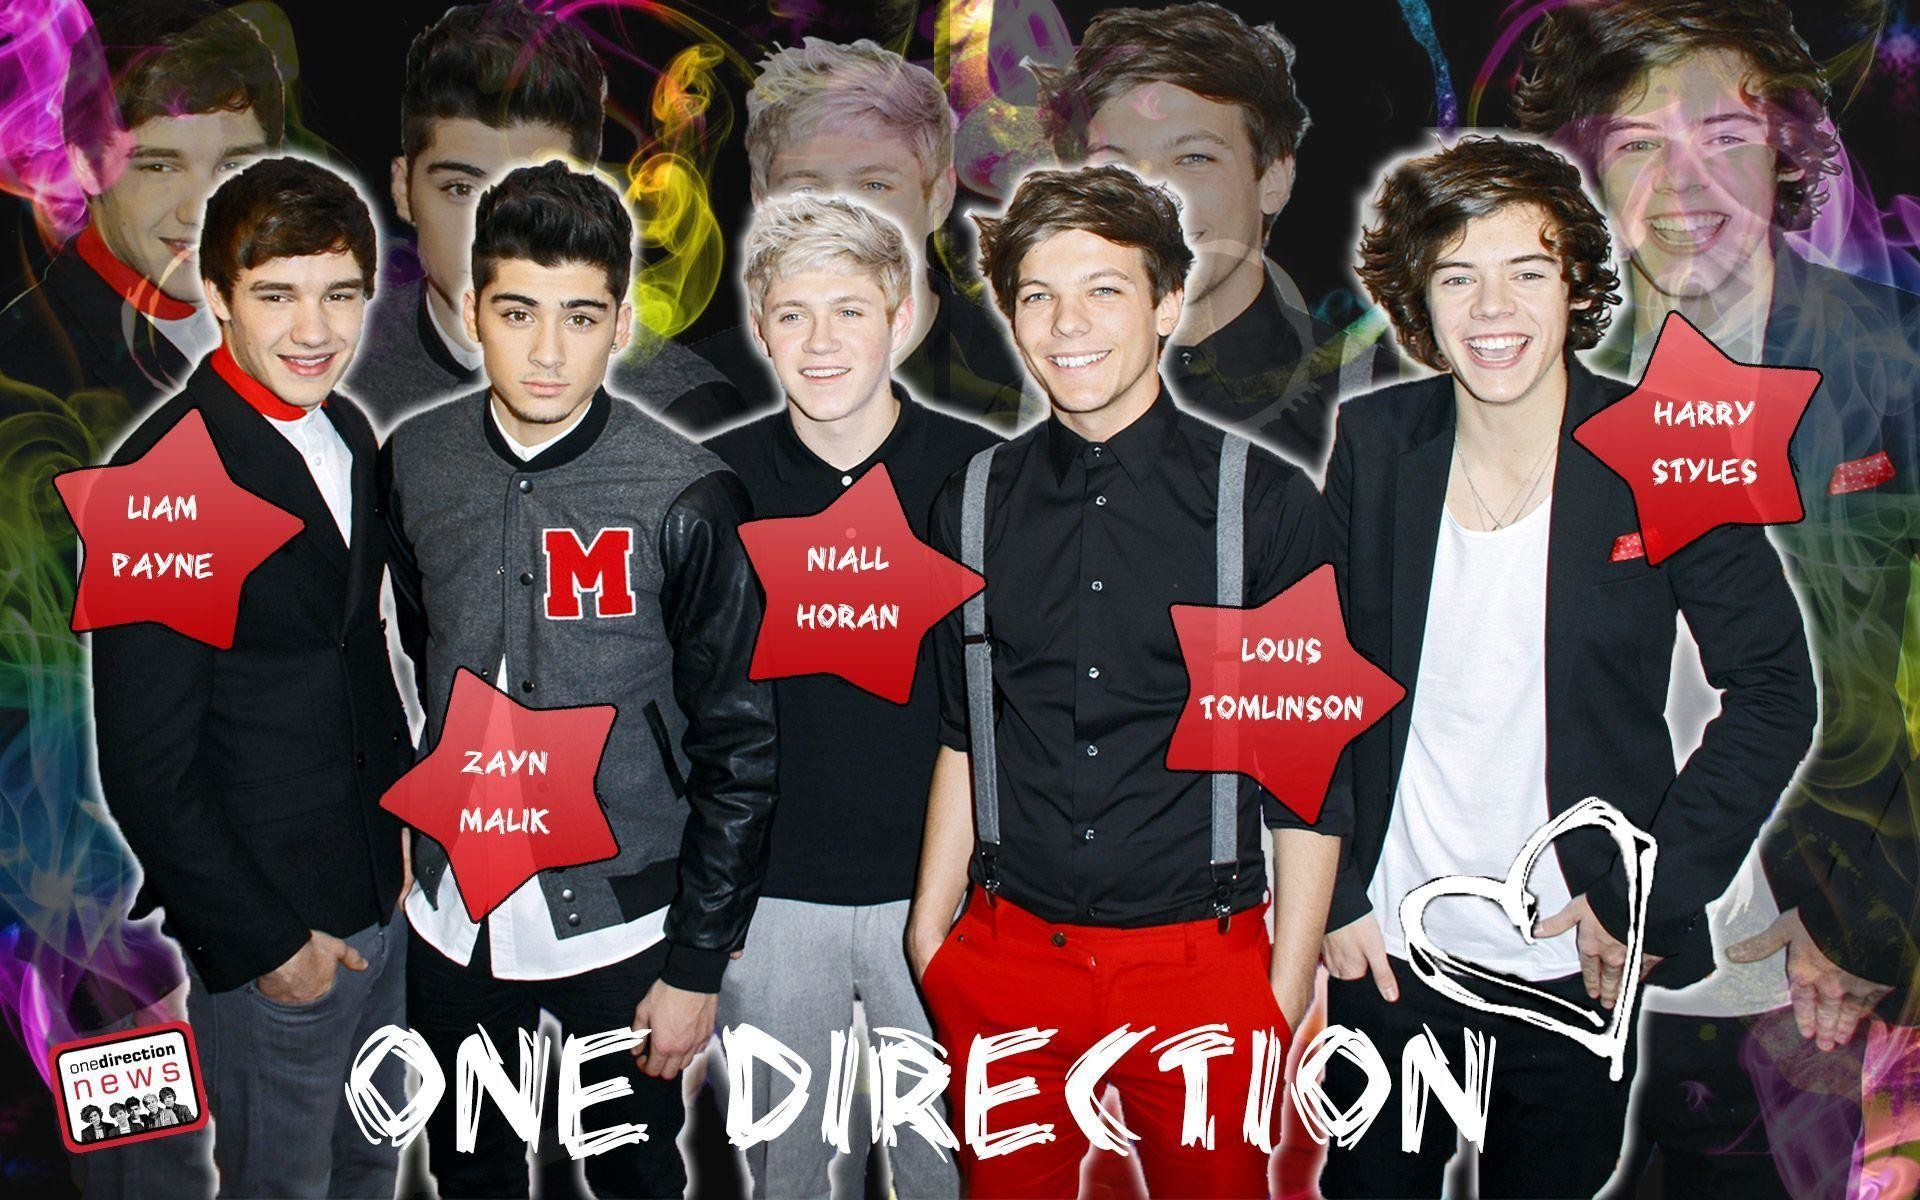 1D One Direction Wallpaper 16 18341 Images HD Wallpapers| Wallfoy.com